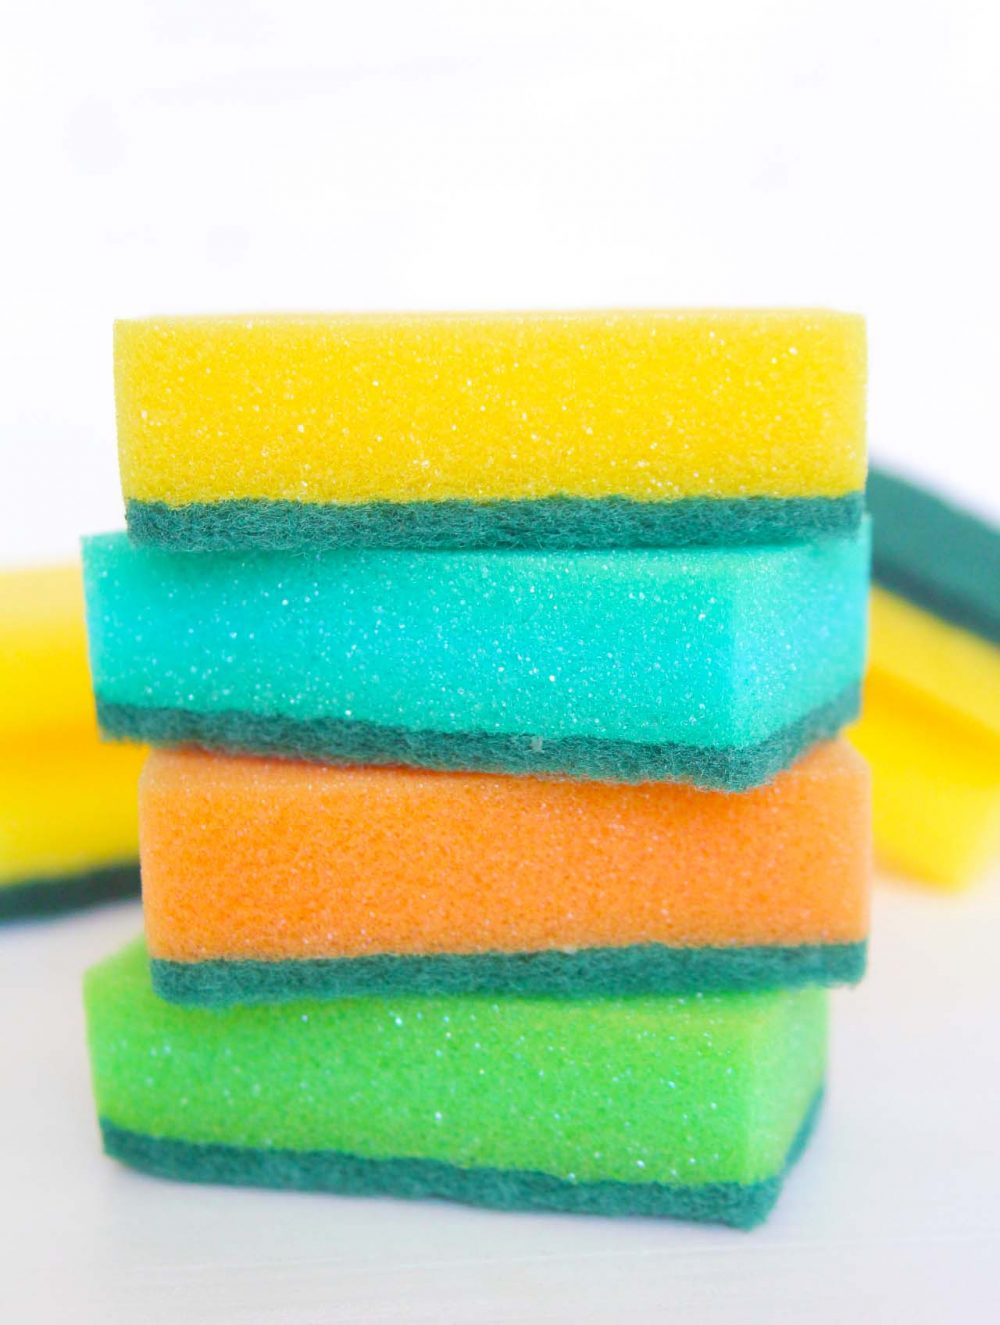 How To Disinfect A Sponge